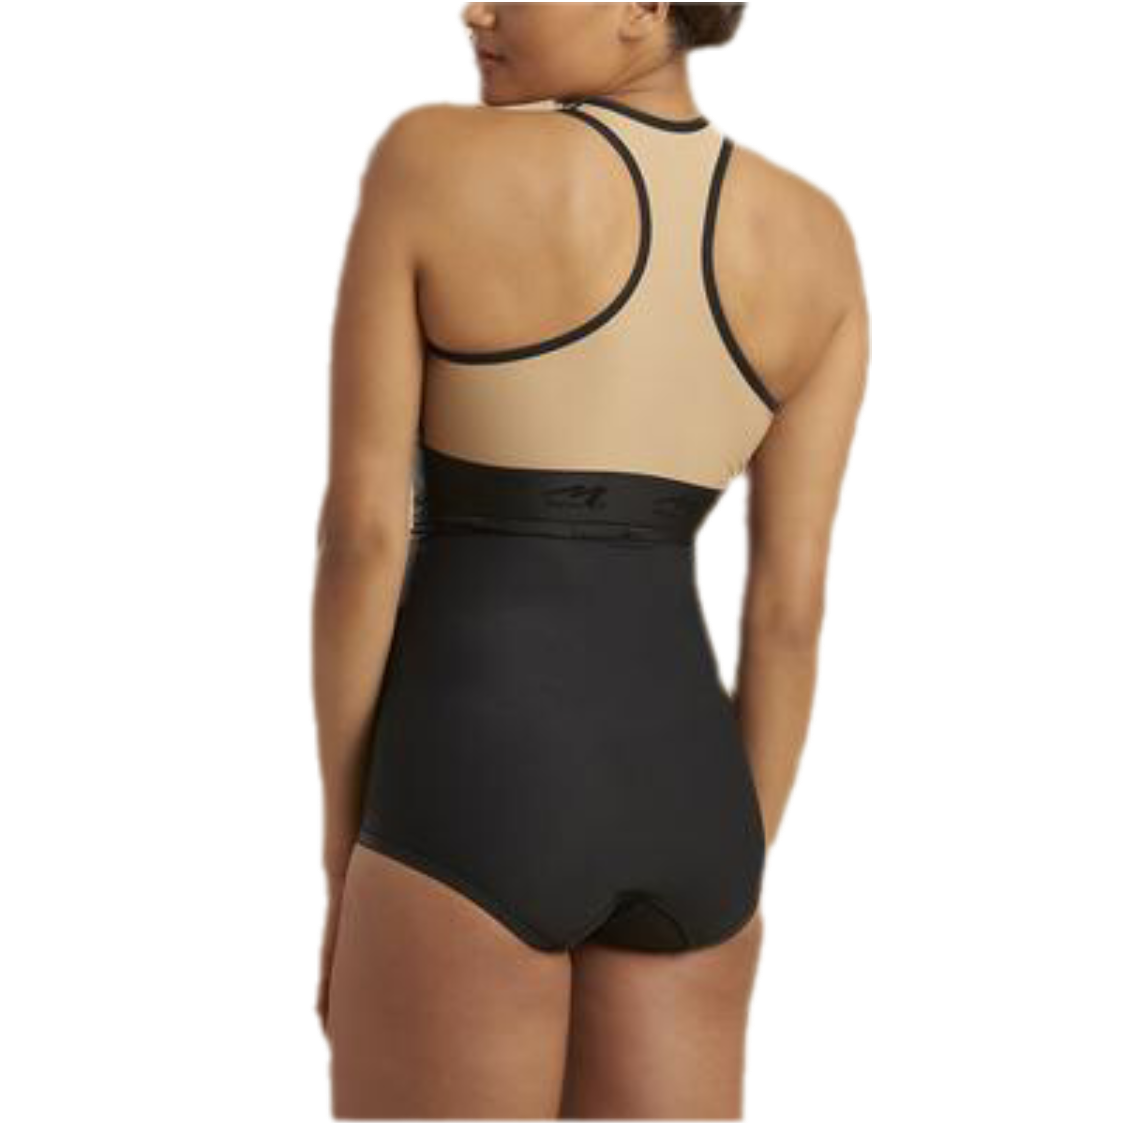 High-Waist Zipperless Girdle - Bikini Length LGA